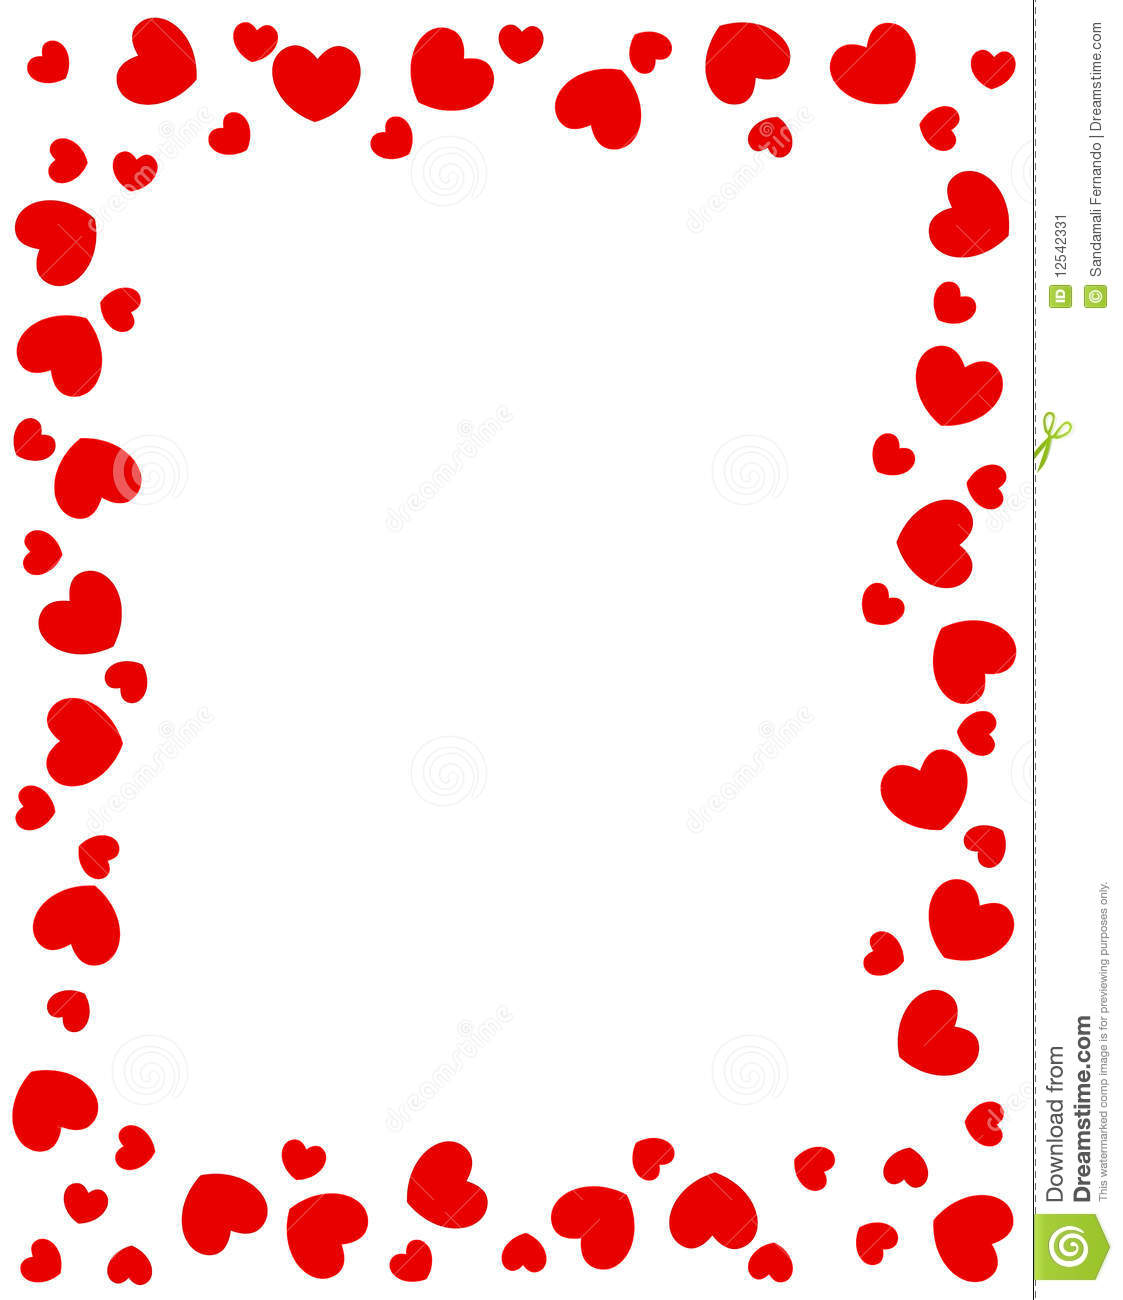 More similar stock images of ` Red hearts border `